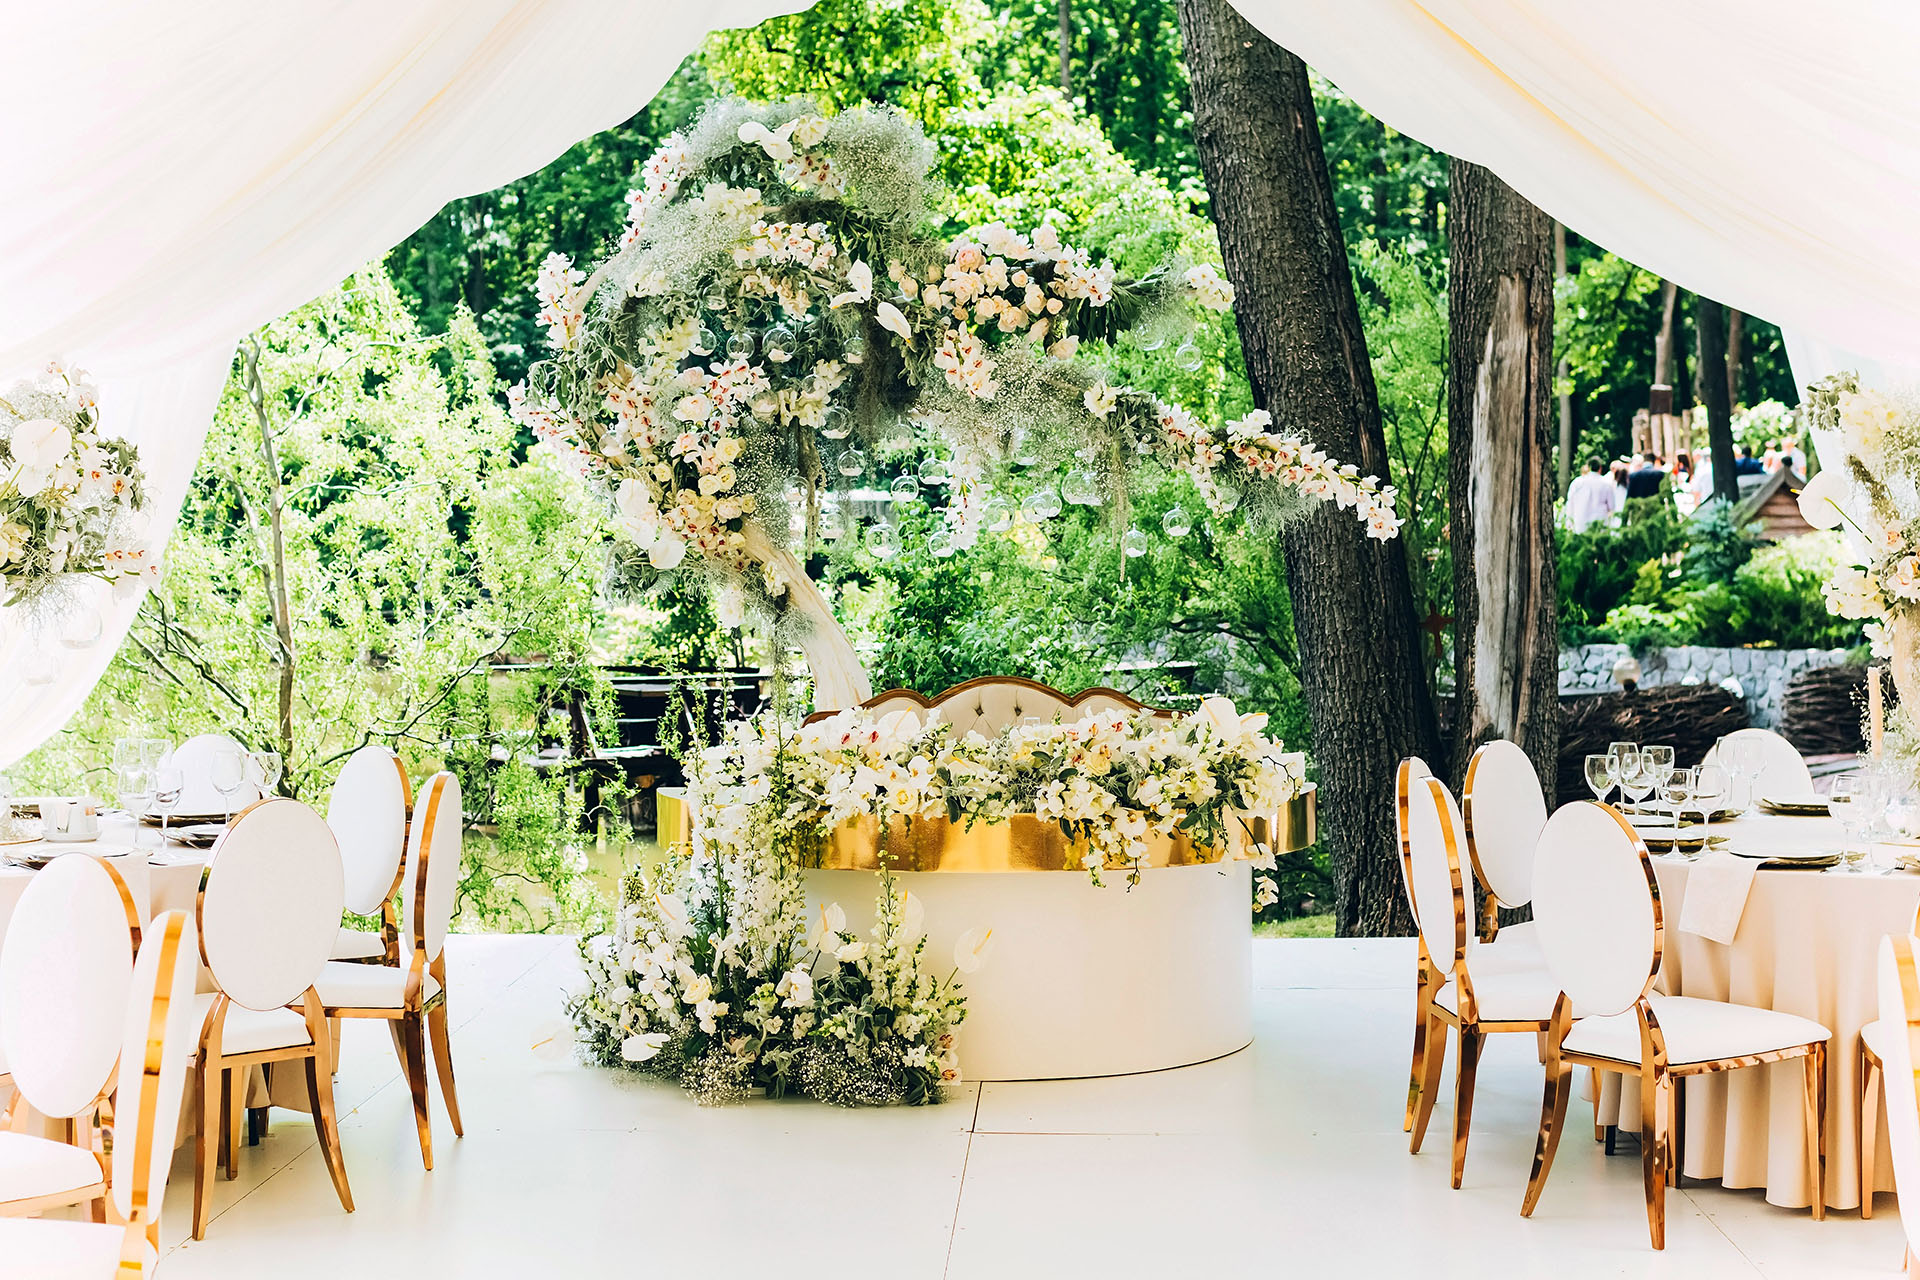 luxury wedding decor. Wedding in white and gold colors. elegant wedding decorated with white flowers. tropical flowers.  white tent. white table of the bride and groom.